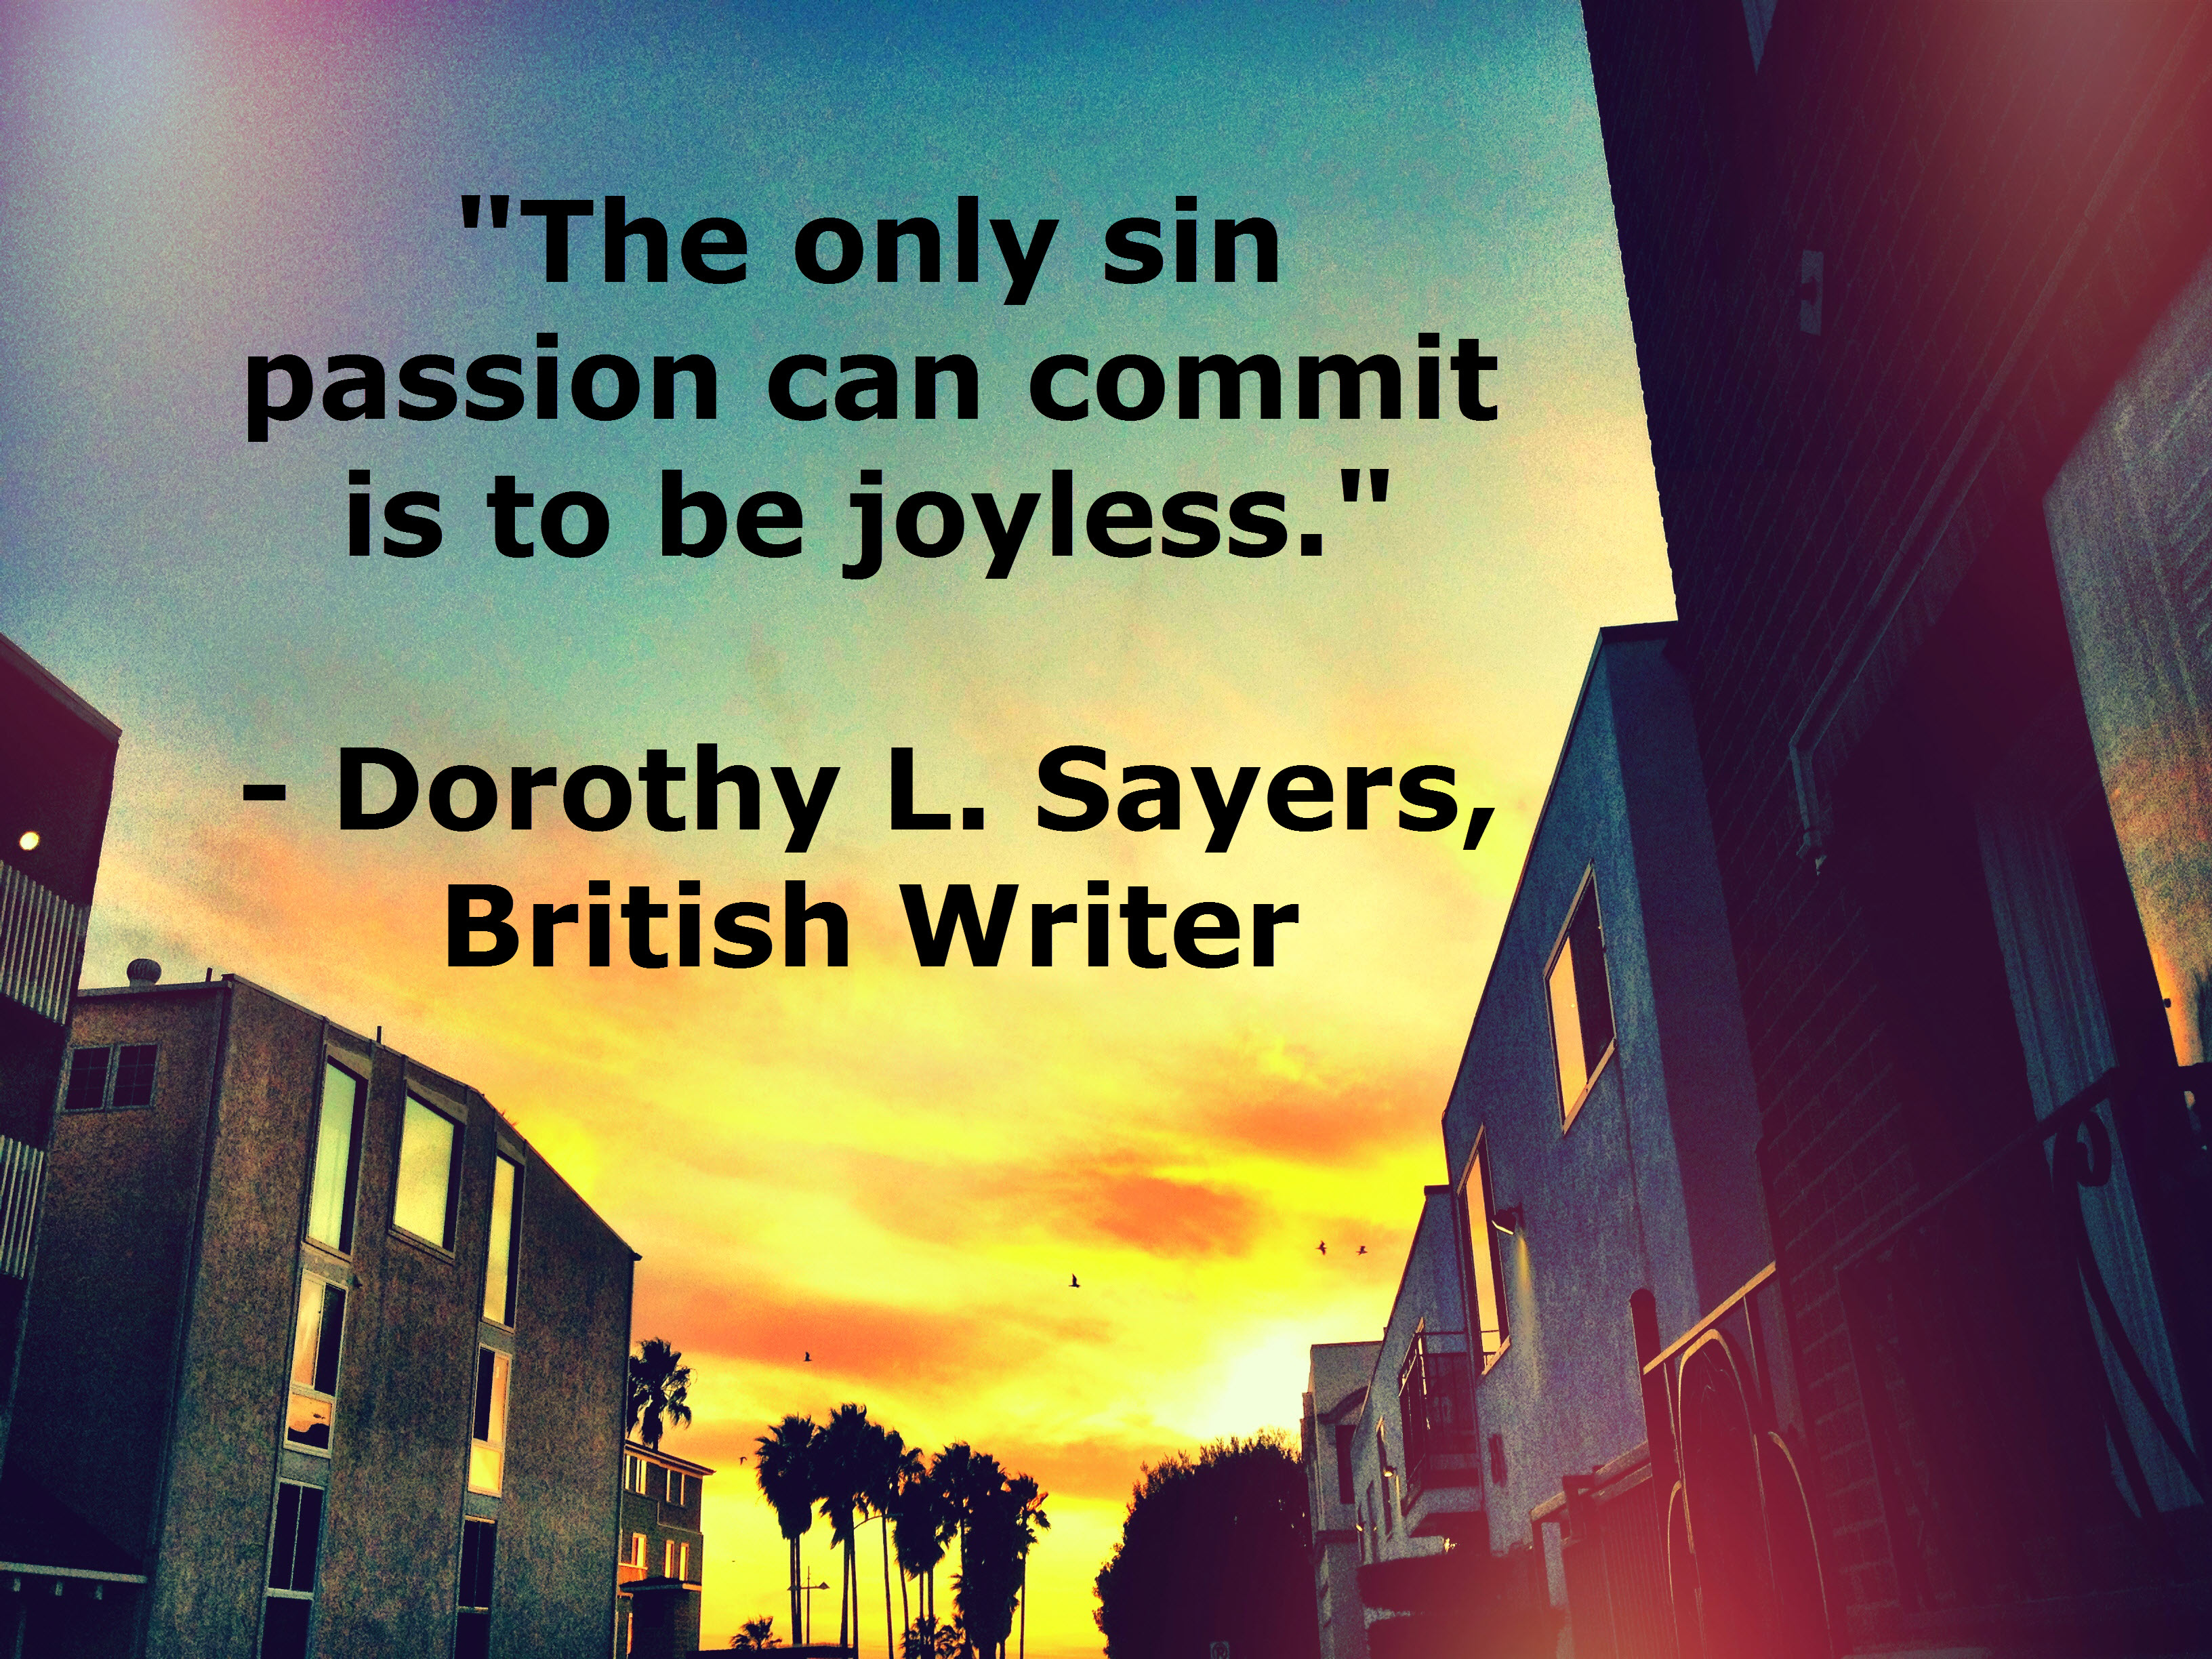 Dorothy L. Sayers's quote #3